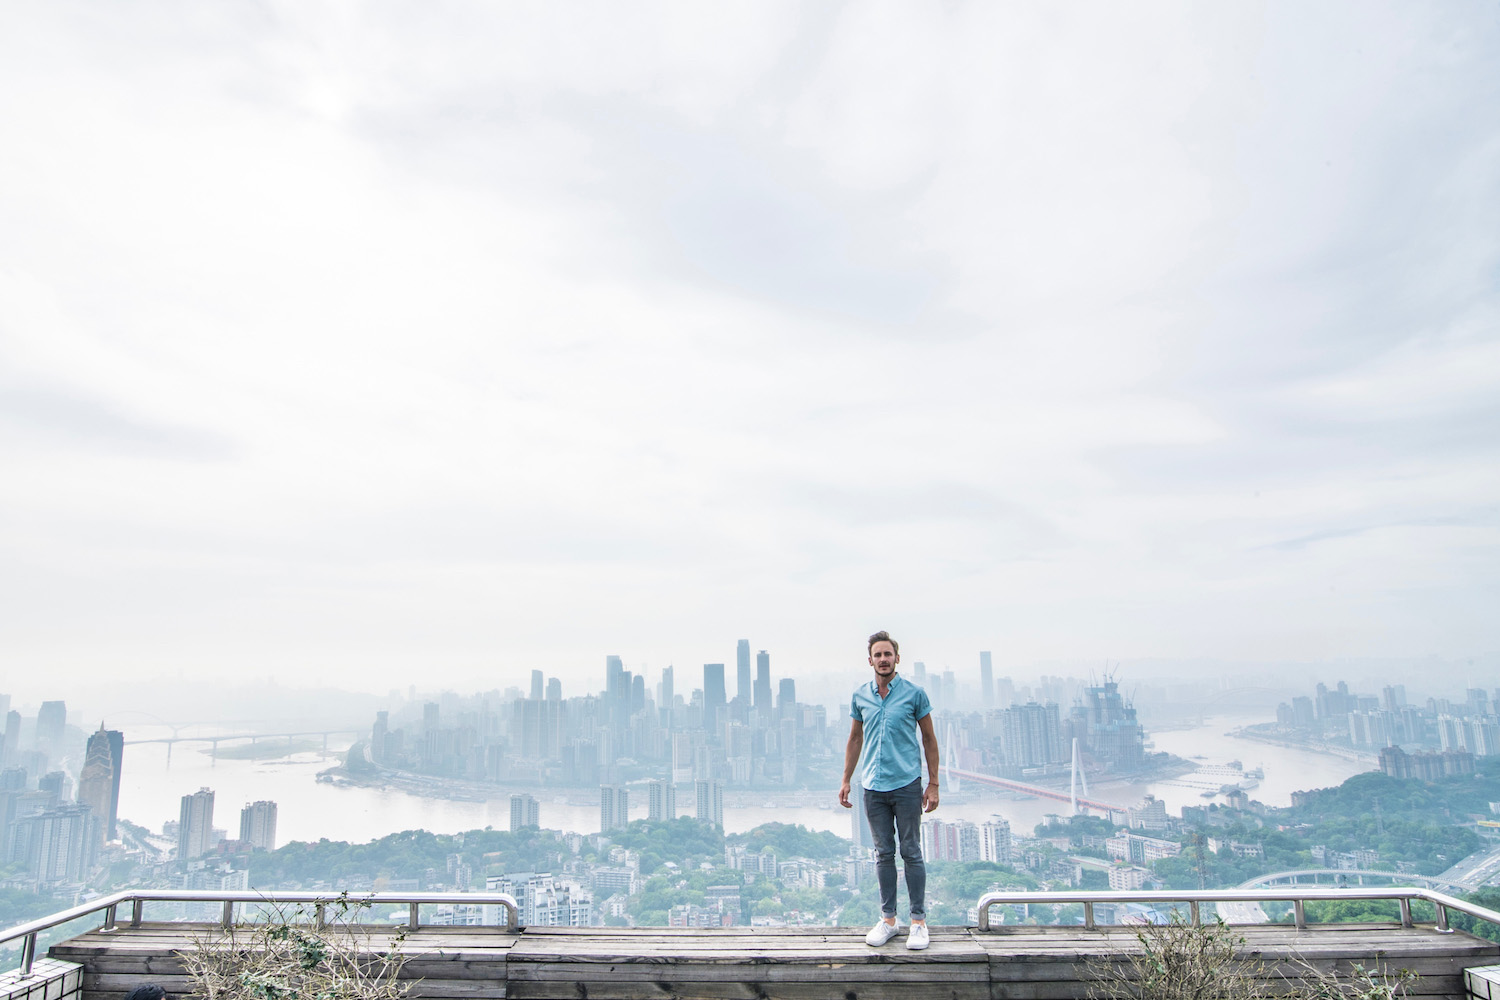 Robert Schrader in Chongqing, China